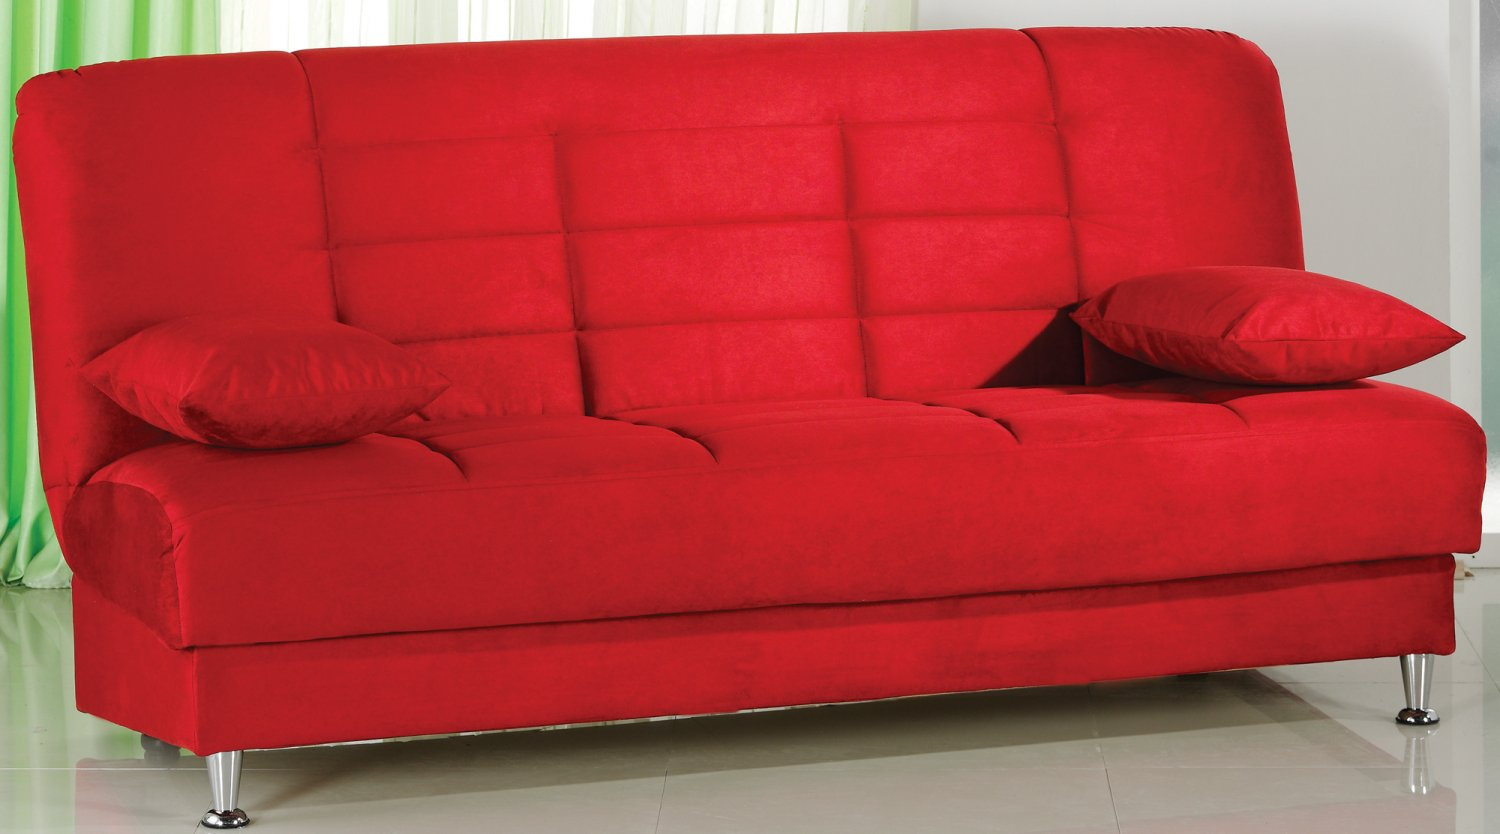 microfiber sofa bed com vegas red with storage